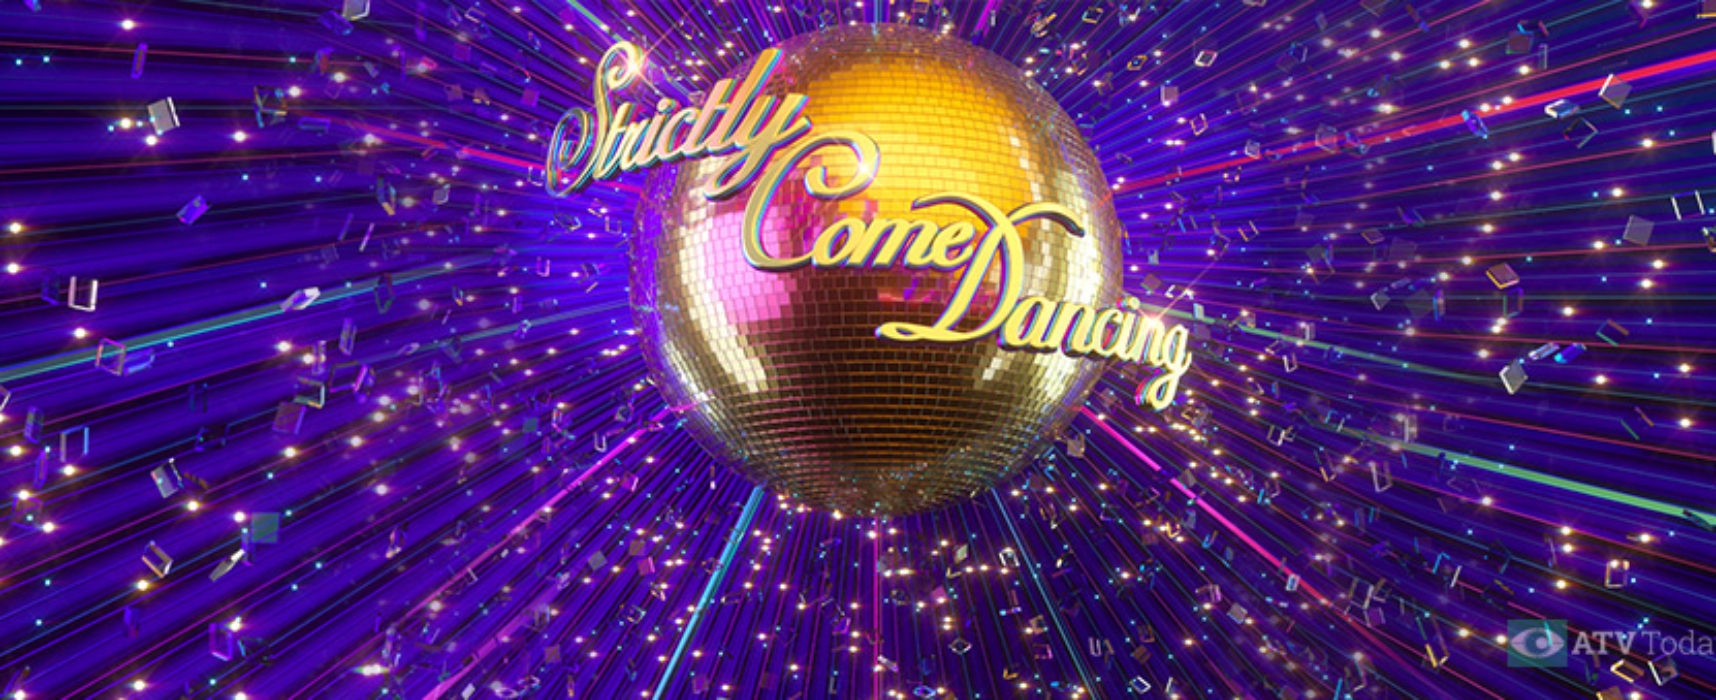 BBC announce Strictly Come Dancing's 2020 Professional Dancers